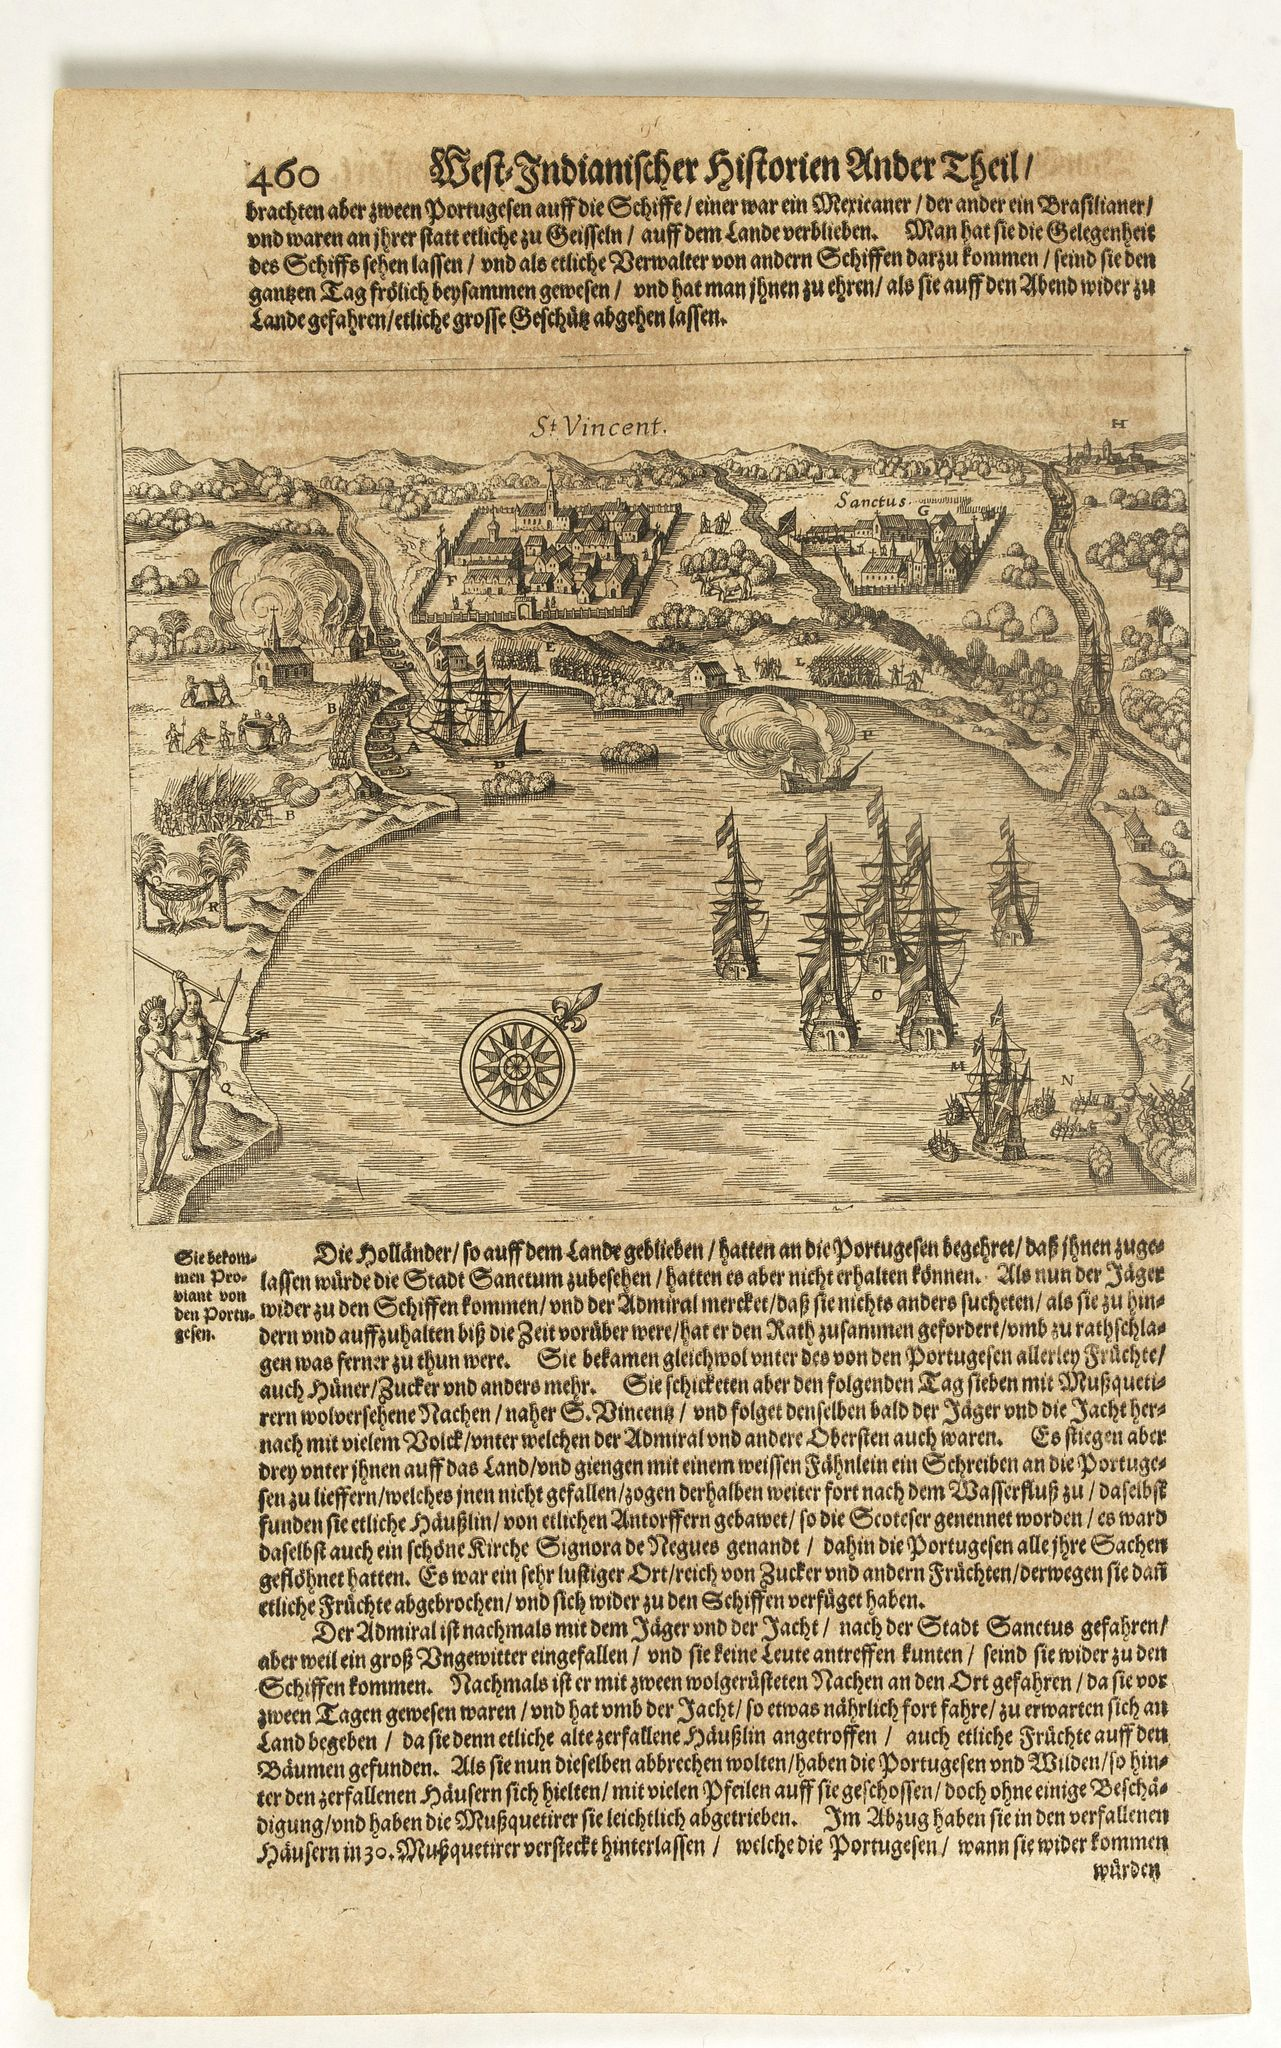 GOTTFRIED, J.L. / DE BRY, T.,  [The Portuguese settlement in Brazil, at the Island of St. Vincent]., antique map, old maps